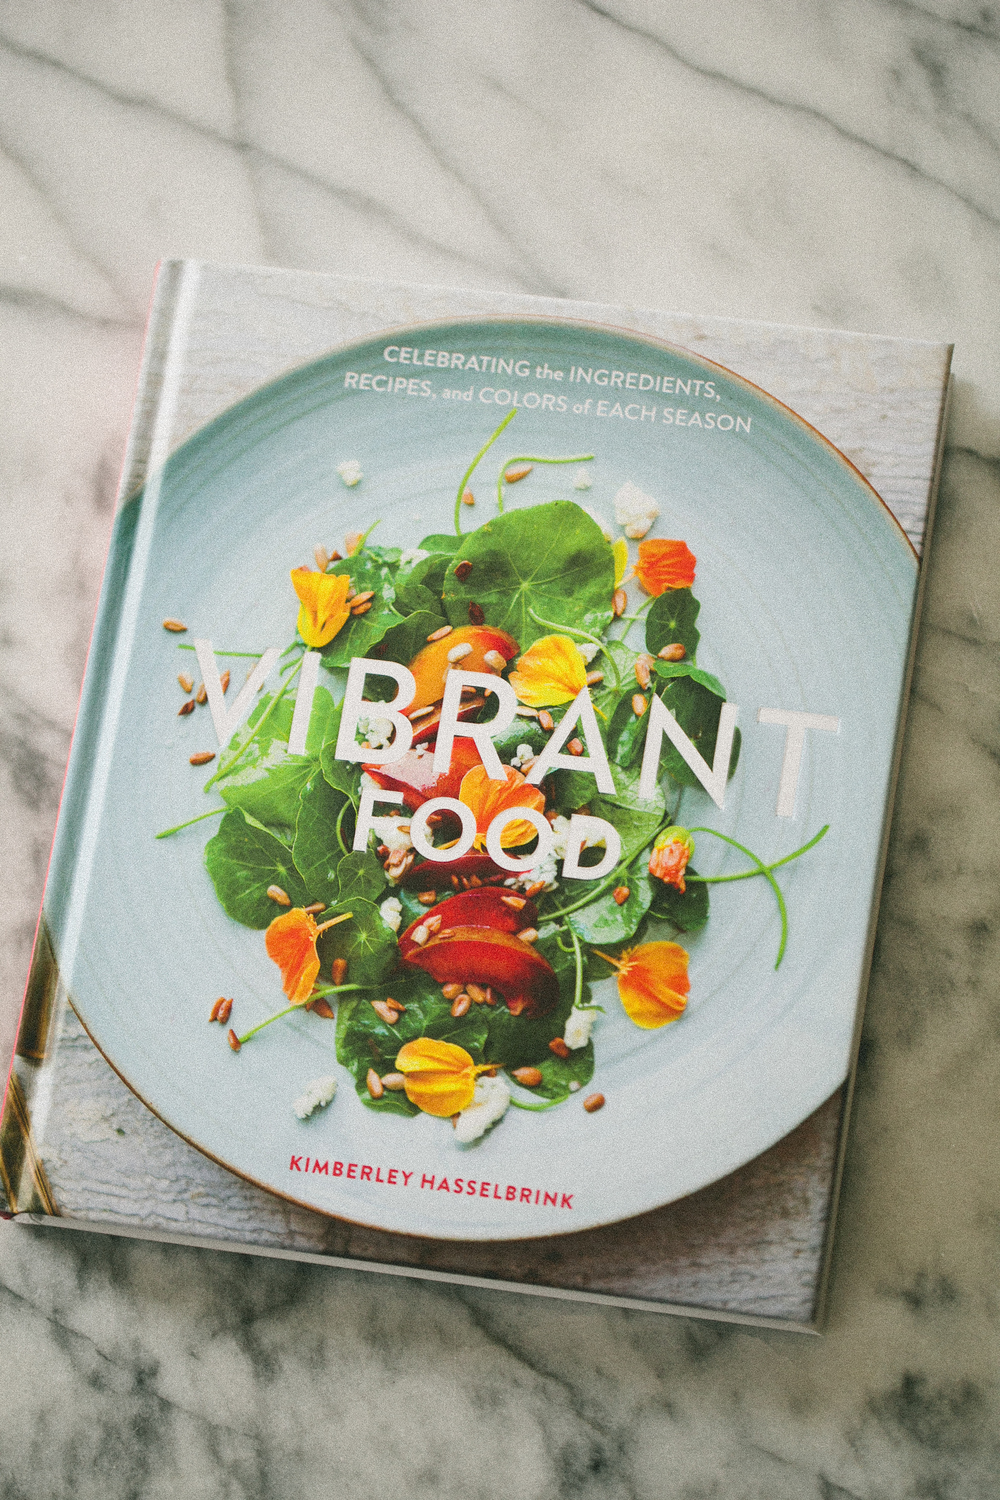 Vibrant Food - Cookbook Giveaway